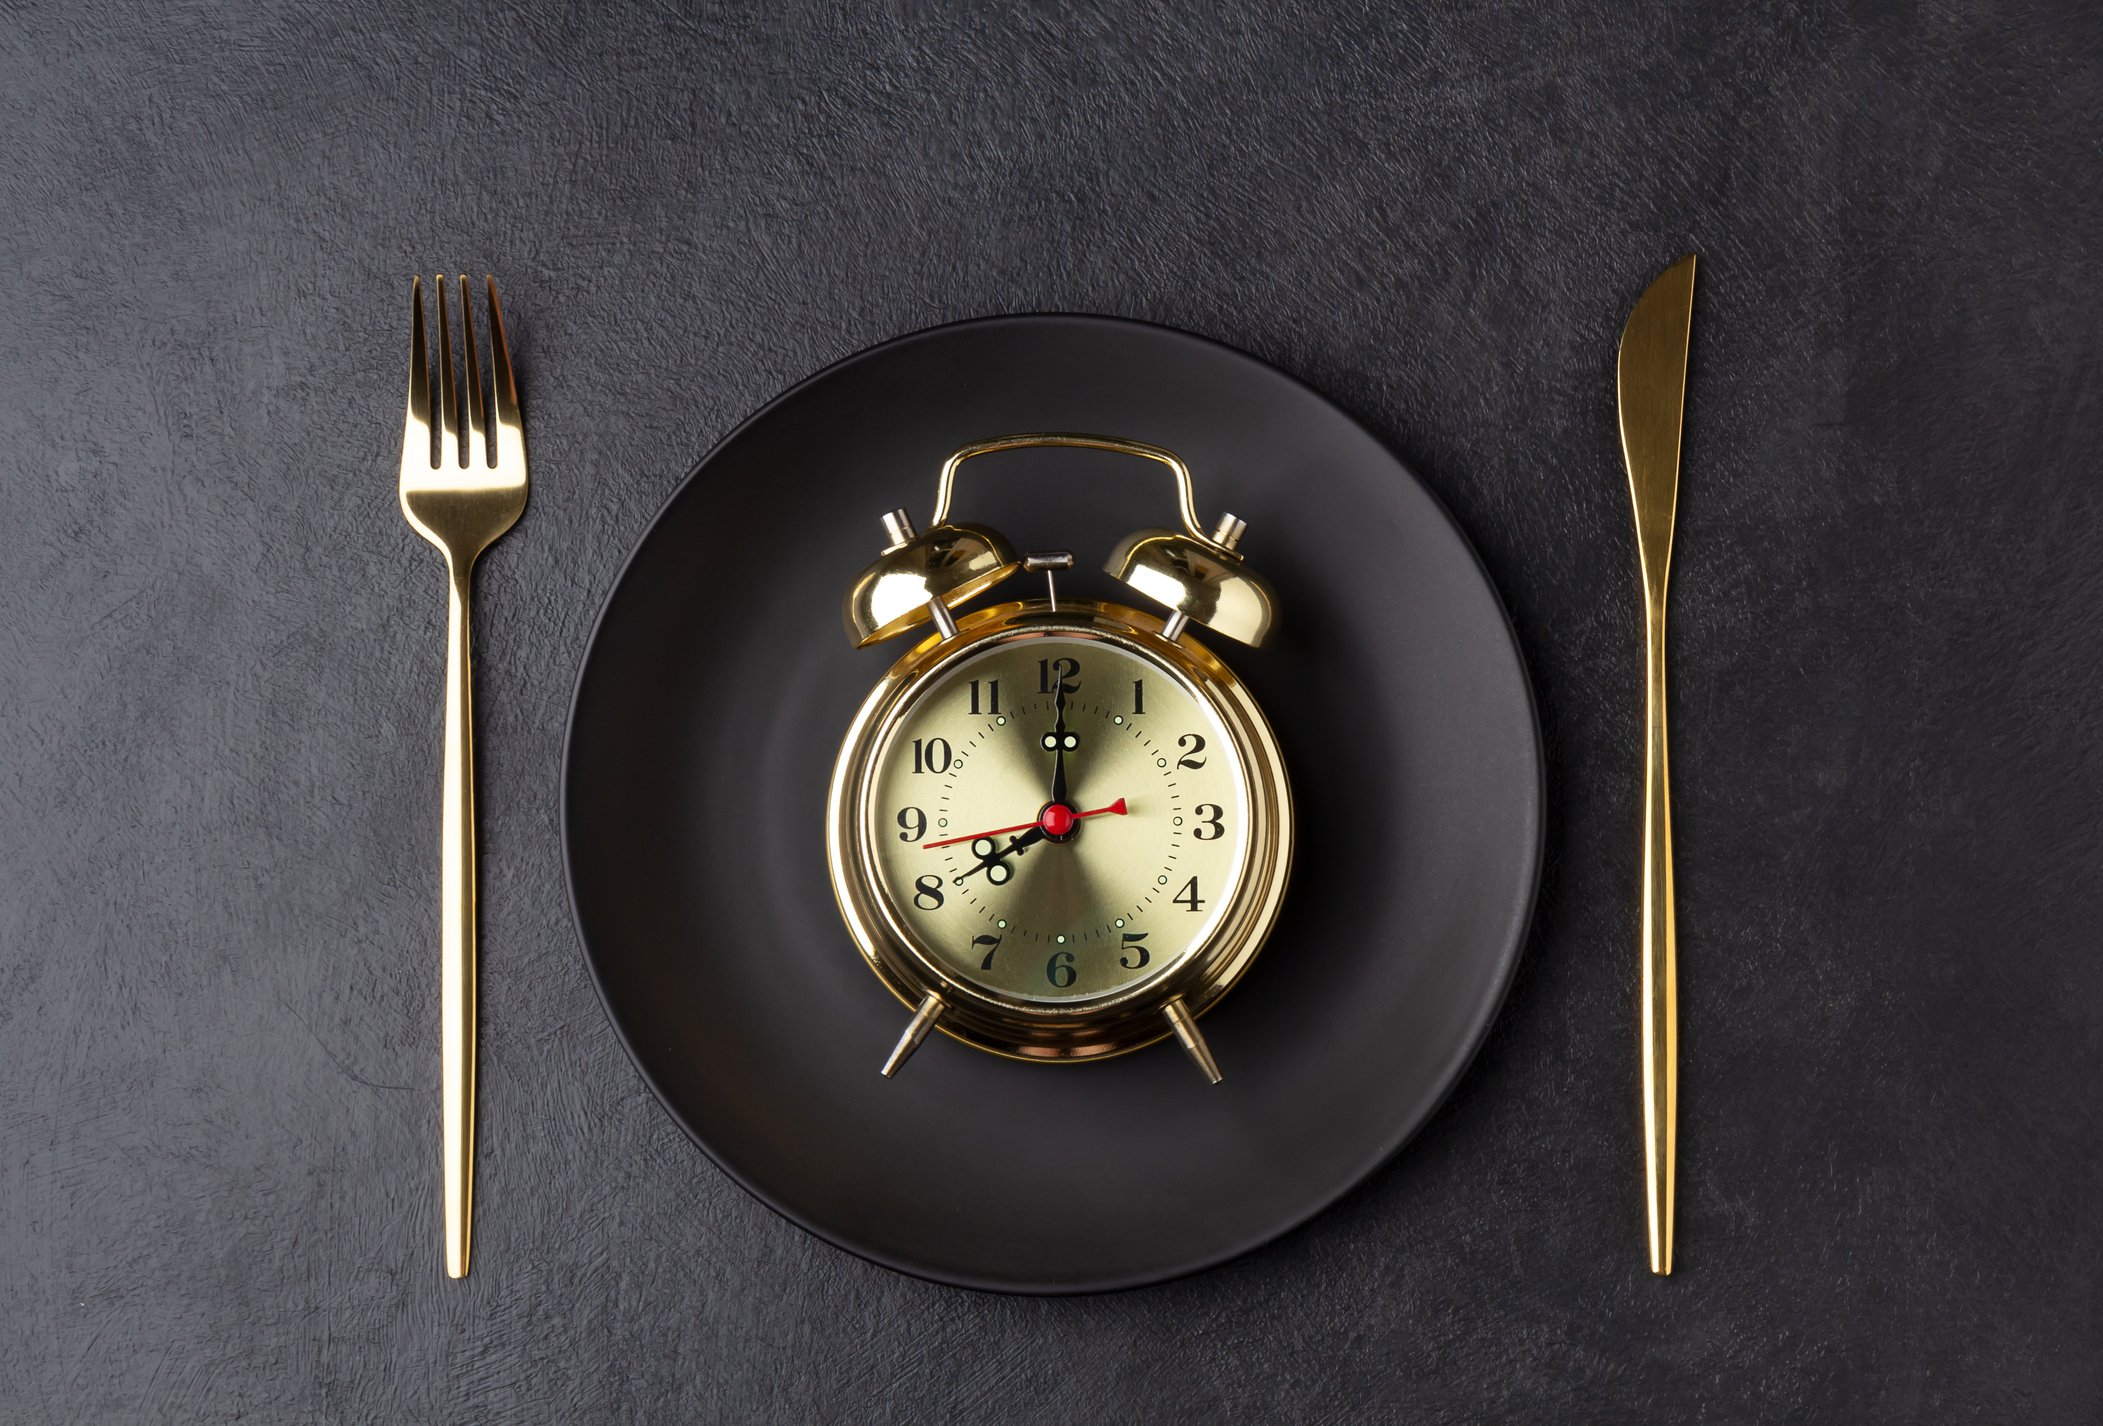 Intermittent fasting is a type of eating many dieters turn to. (iStock Photo)